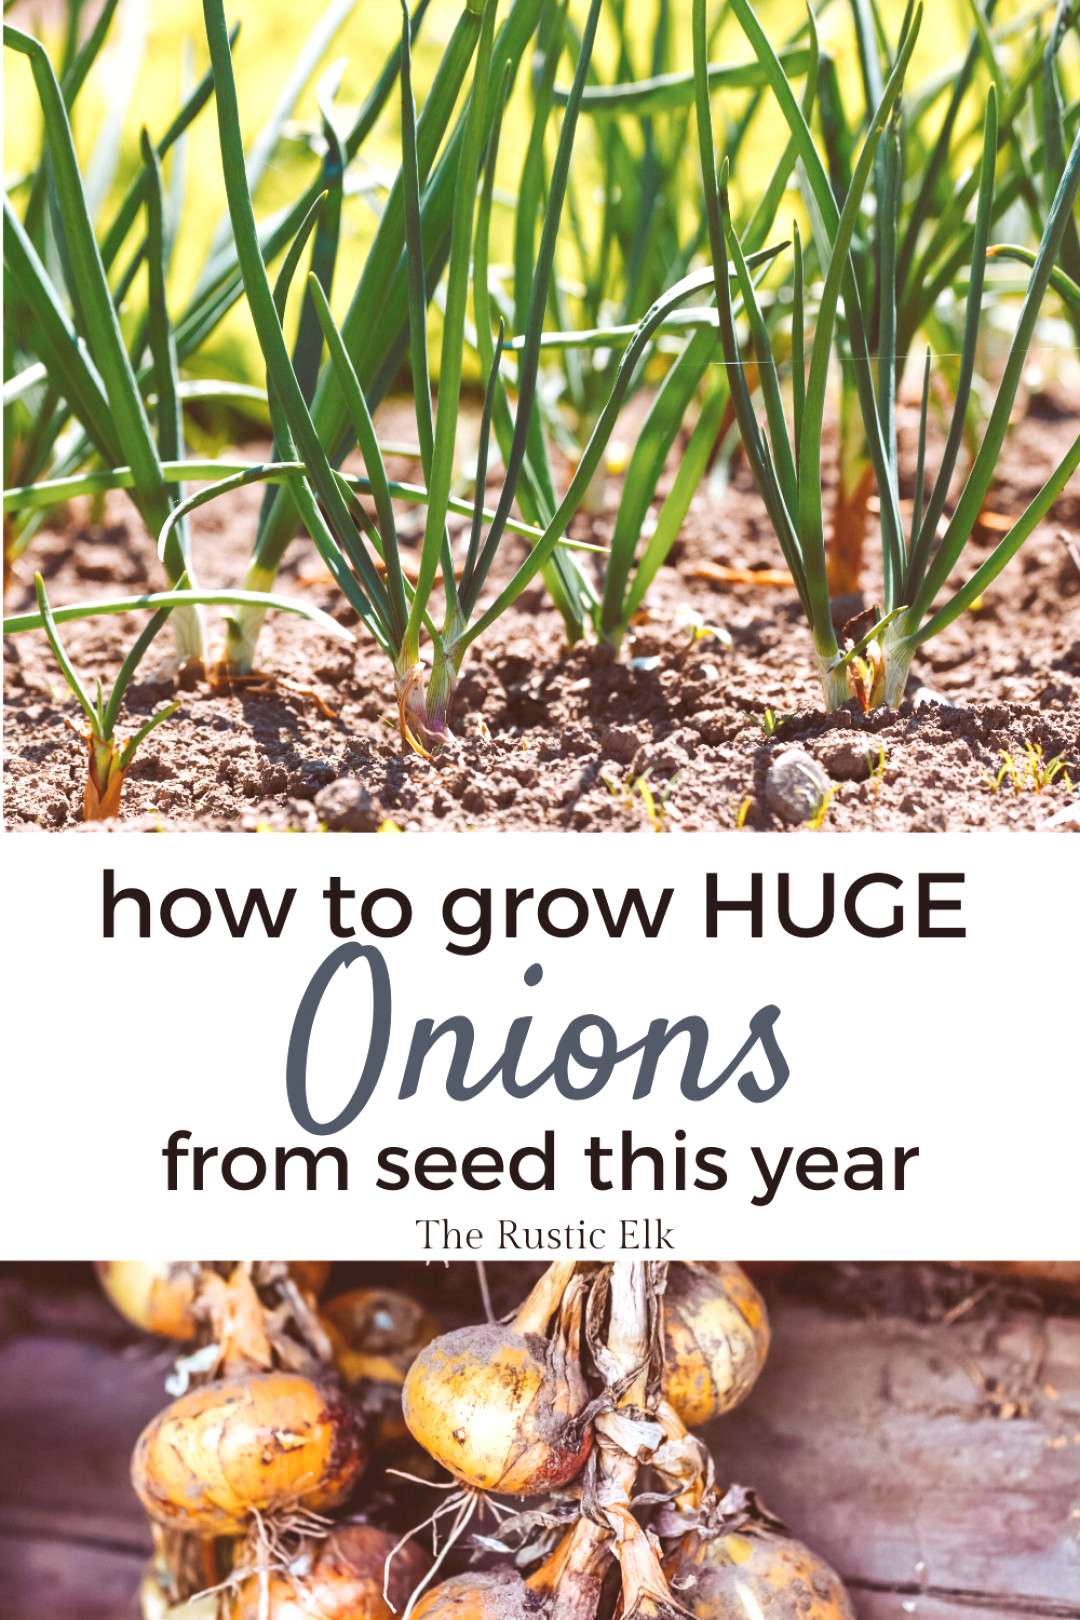 How to Successfully Grow HUGE Onions from Seed Never had luck growing onions from seed? This guide